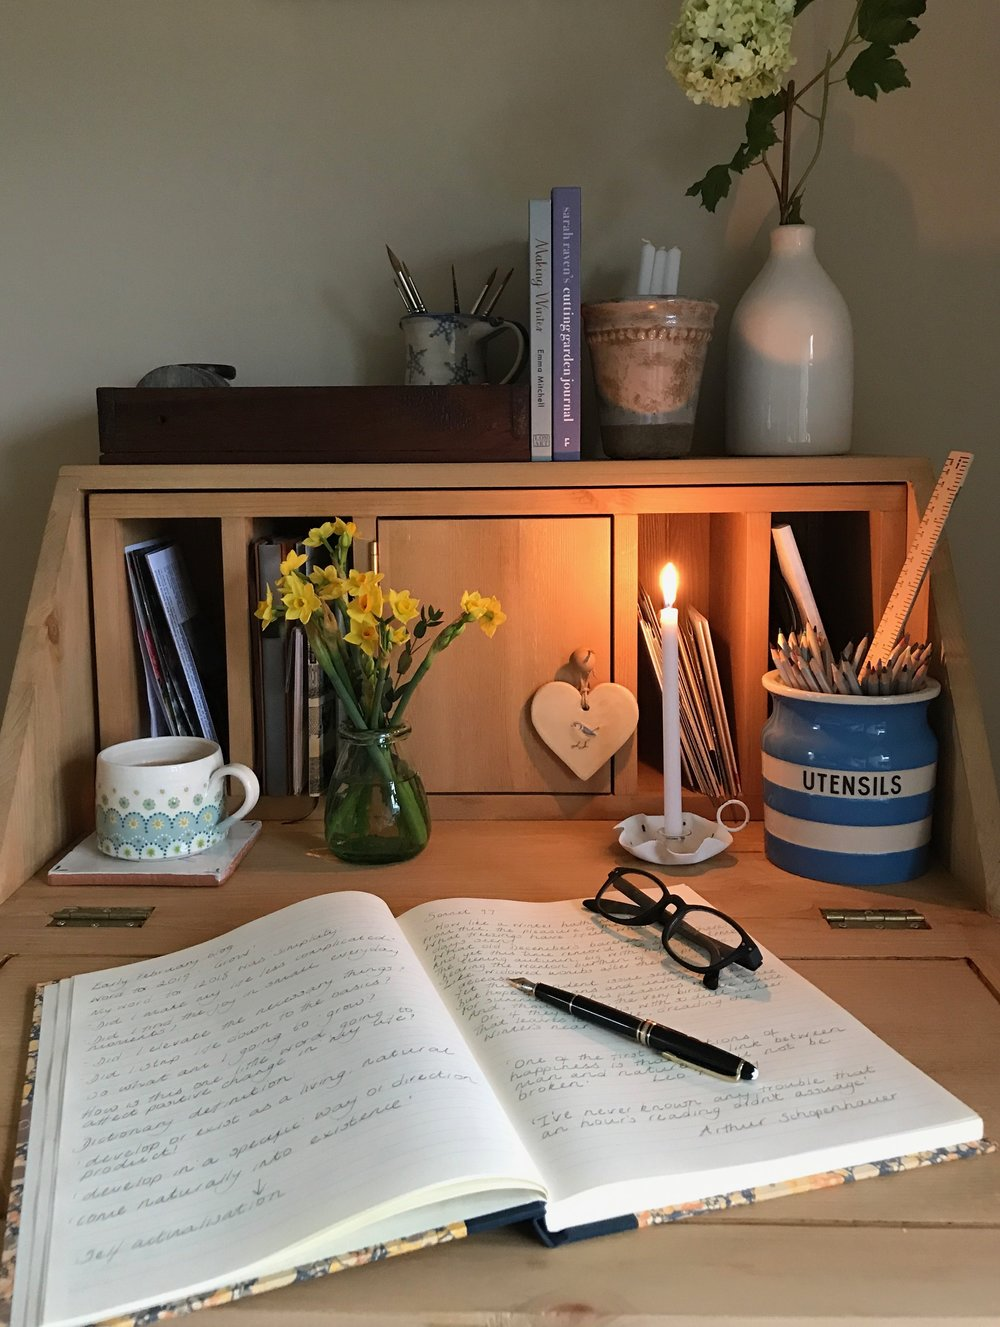 I bought a bureau with my wages and set up a little writing space in the corner of the sitting room. This year i'm going to keep a diary, recording my thoughts and feelings.